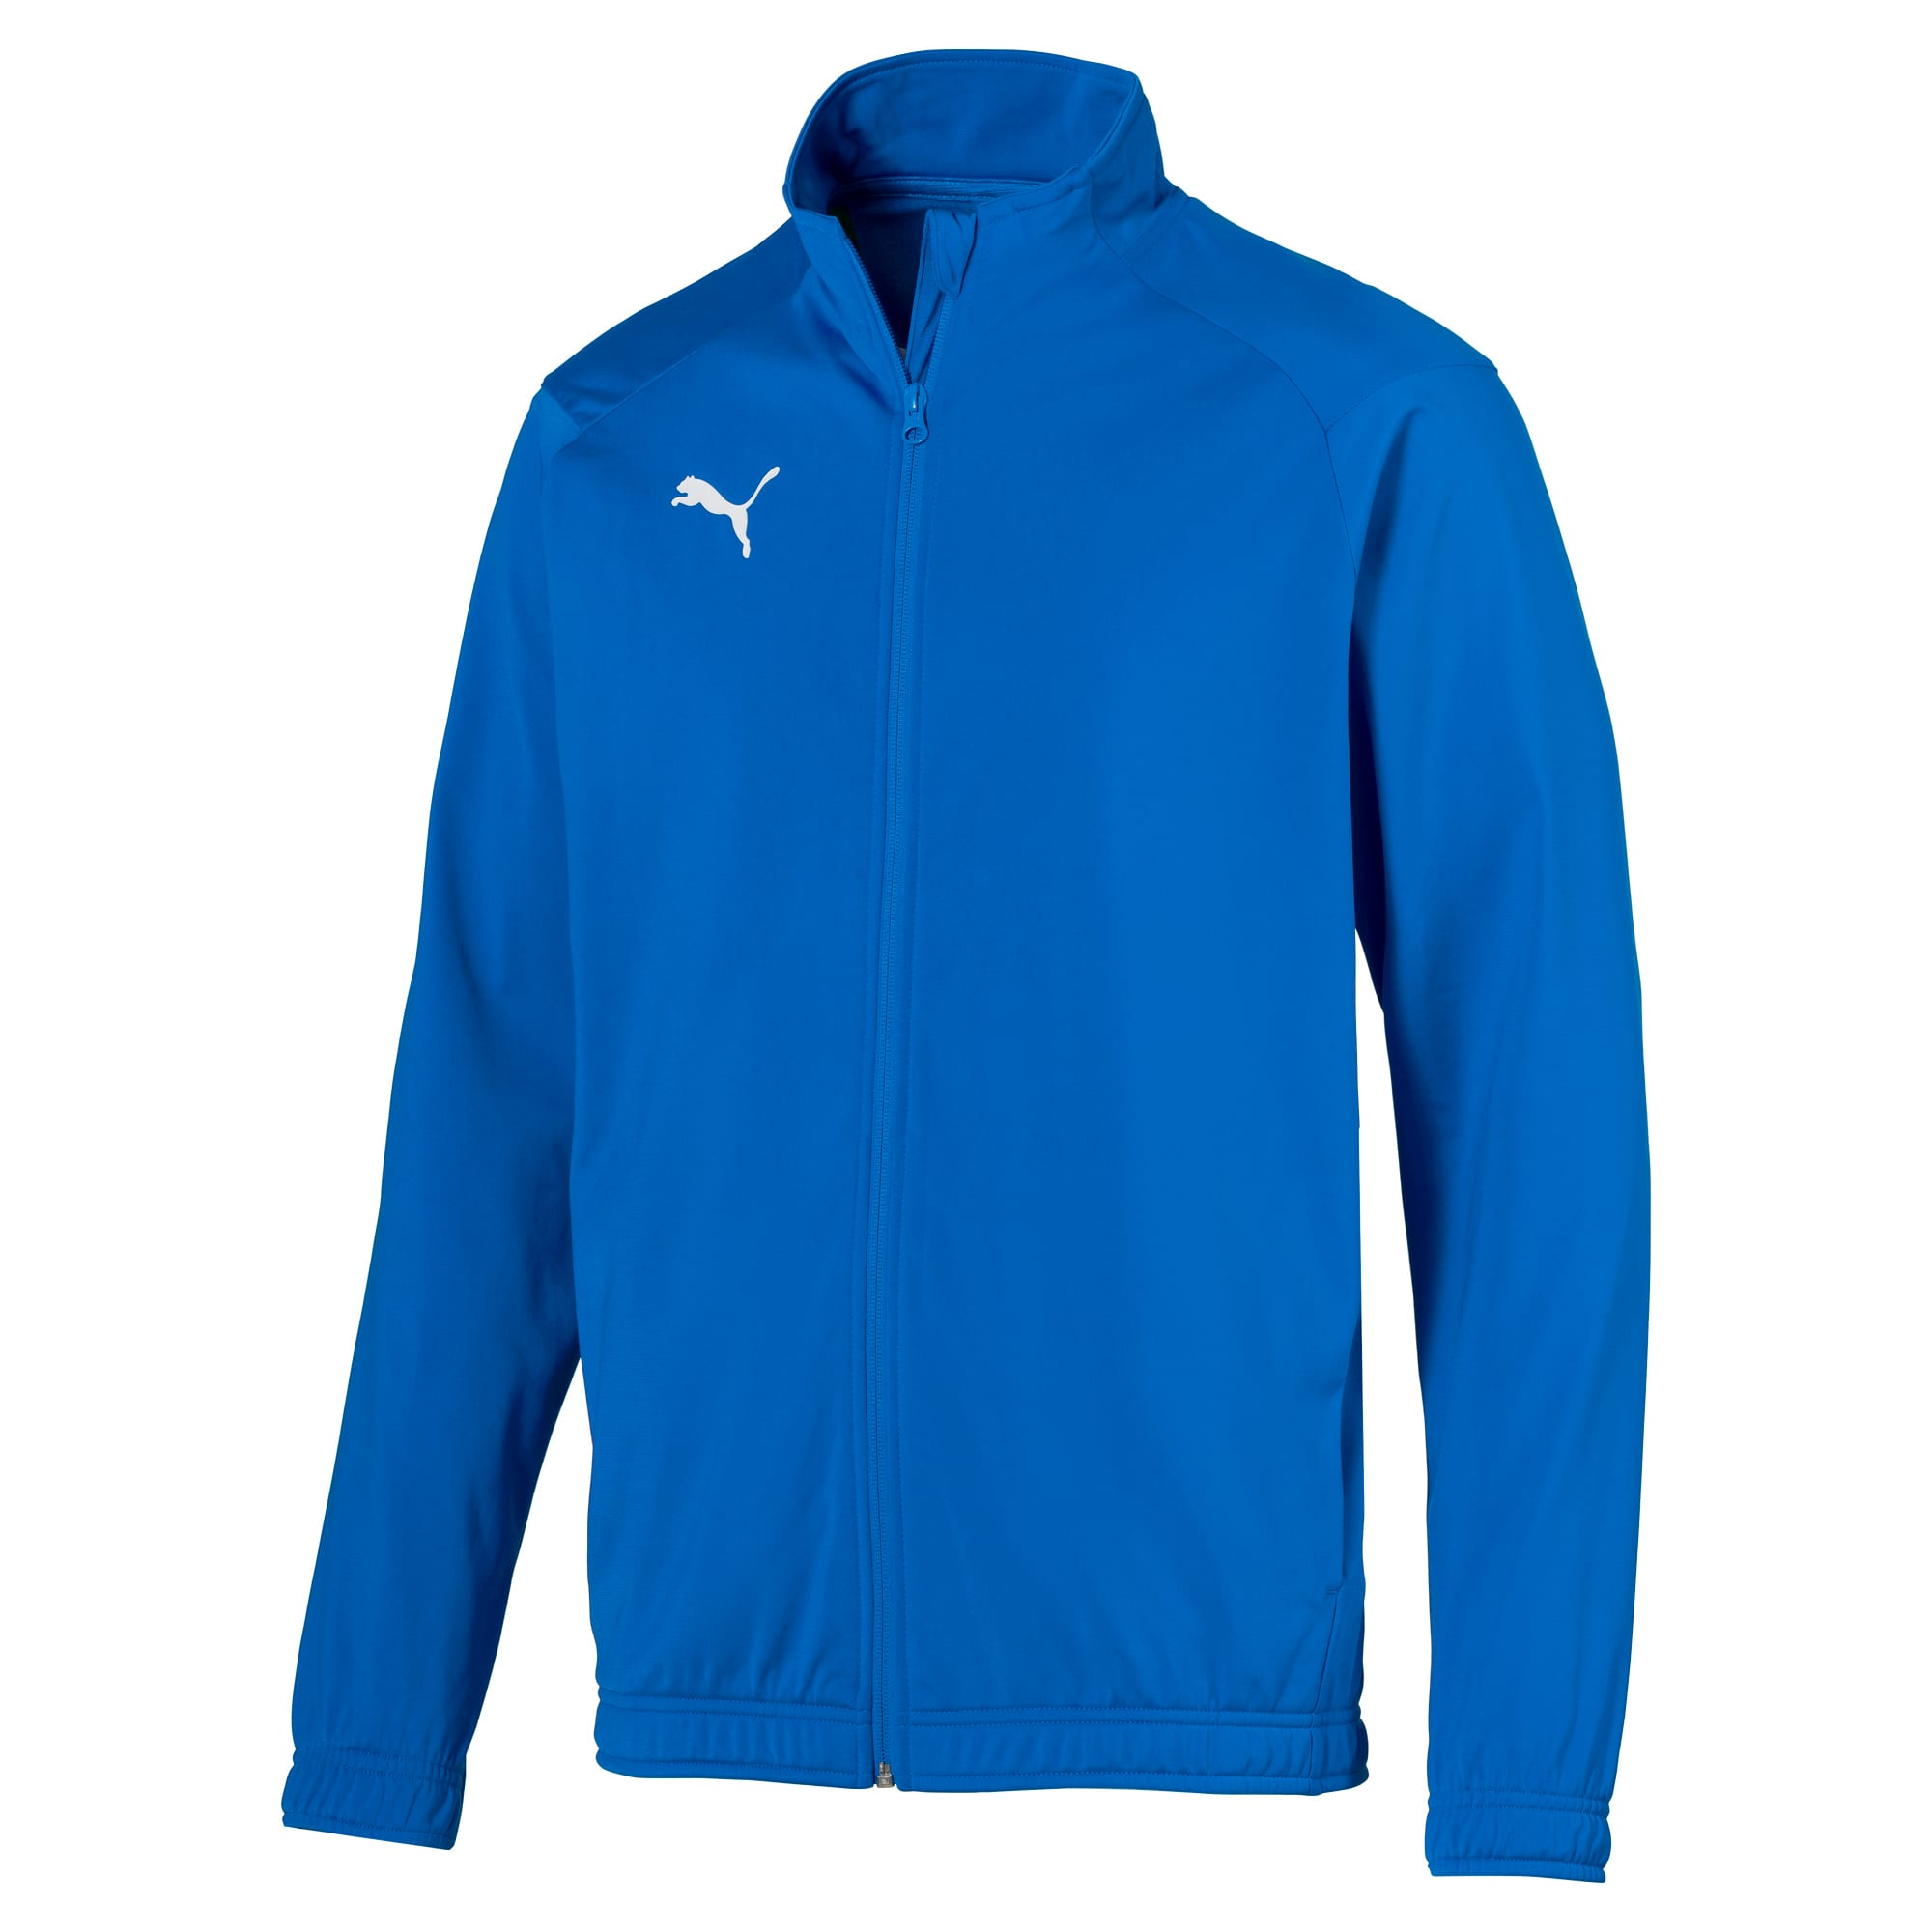 PUMA Męska Kurtka Football LIGA Sideline Poly Core Blue Lemonade, Odzież